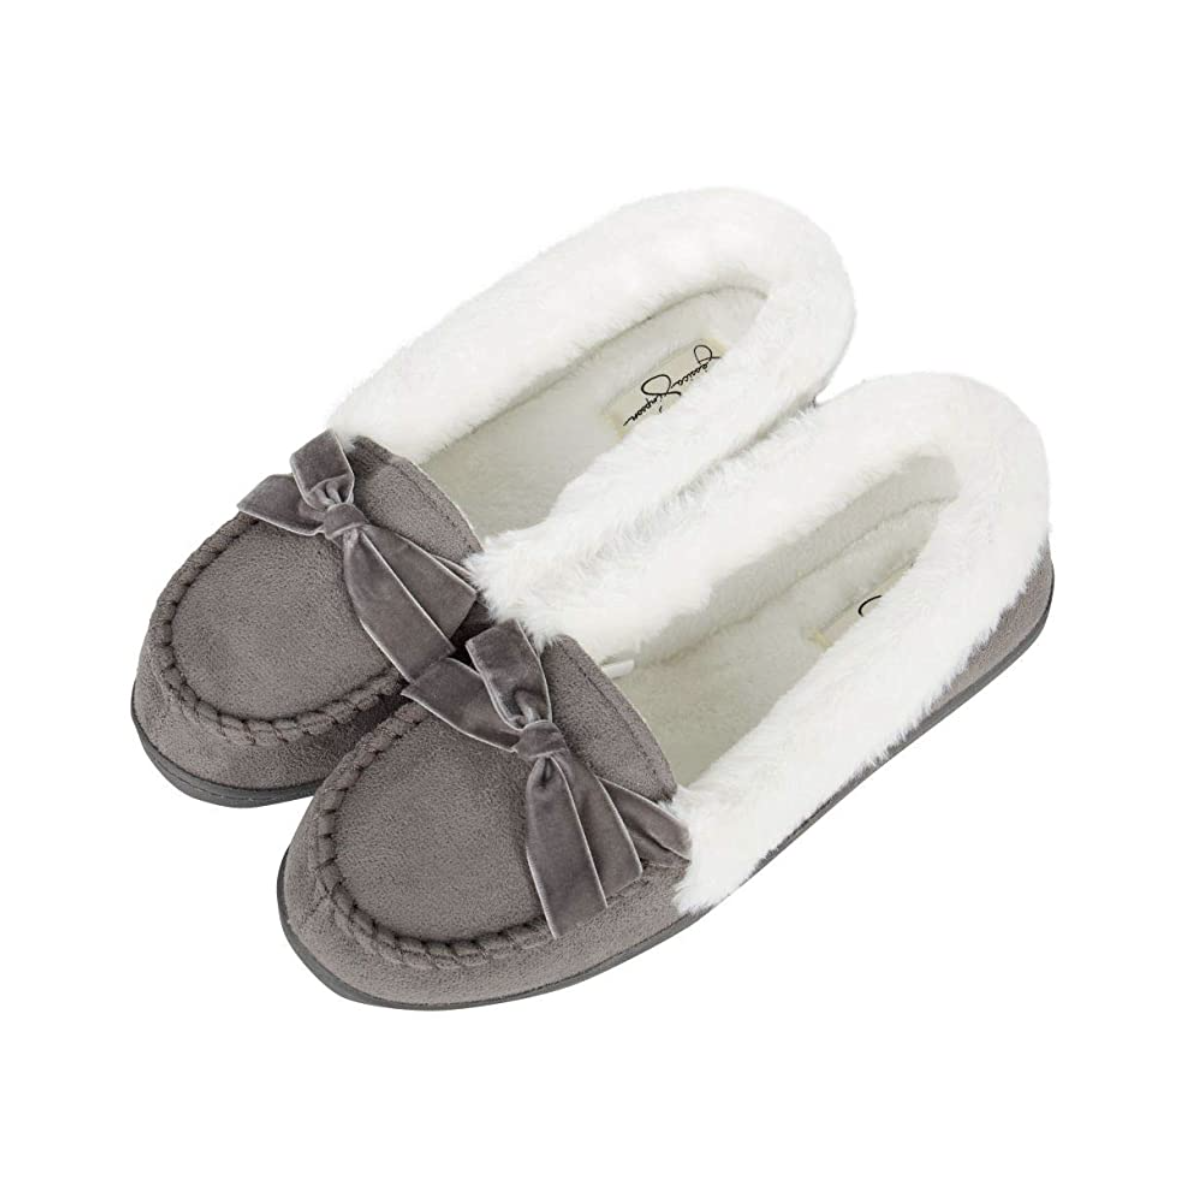 Jessica Simpson Women's Micro Suede Moccasin Bridal Slippers Wedding Day